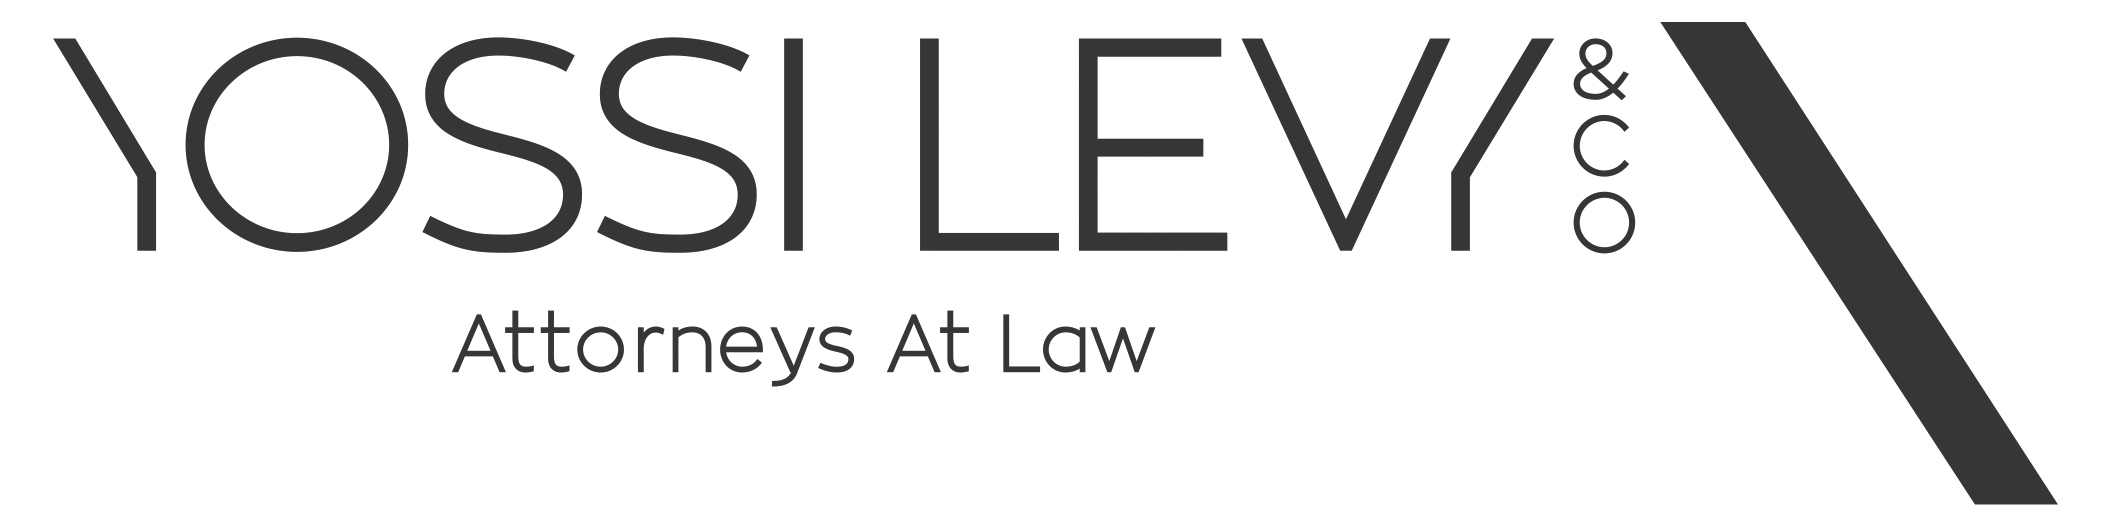 Yossi Levy & Co.; Attorneys At Law